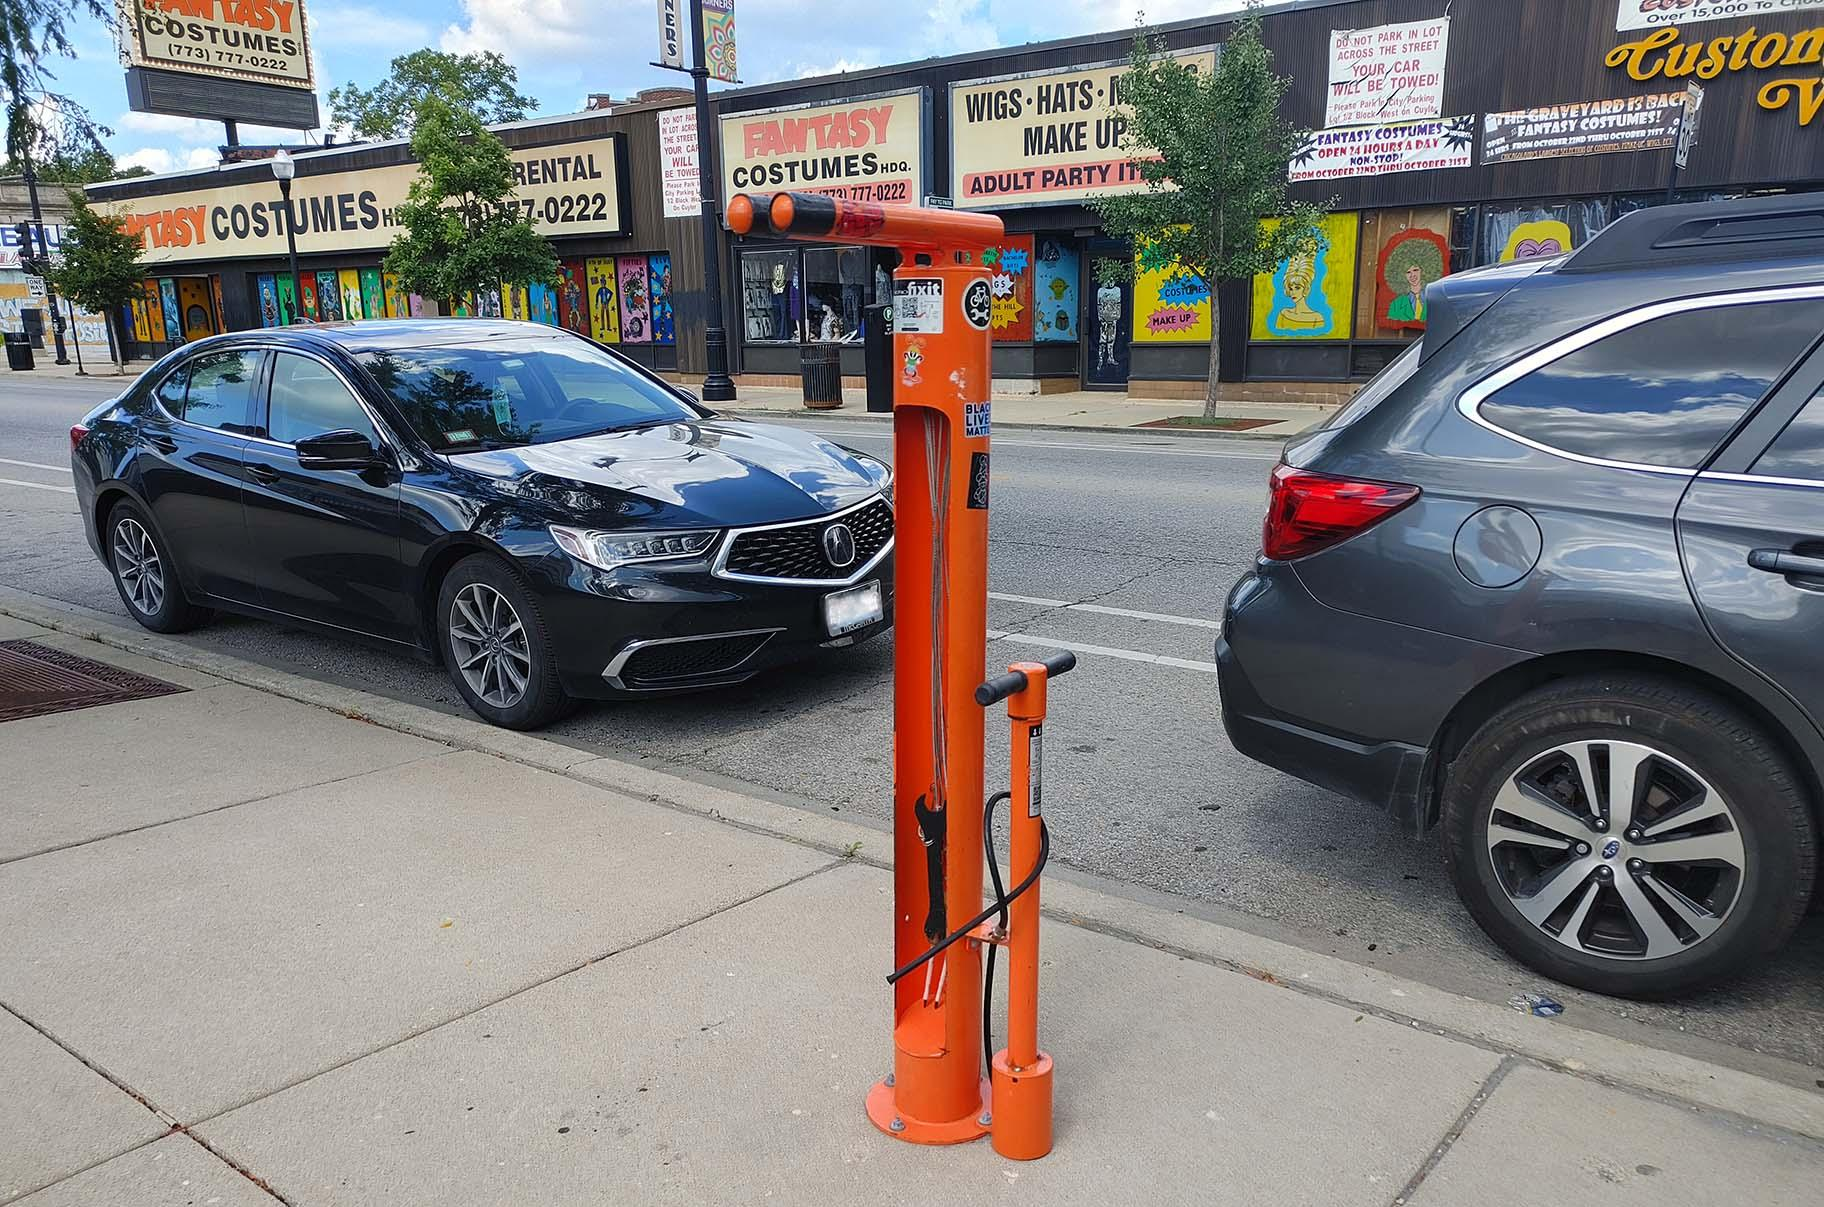 The first Fixit bike repair station to arrive in Portage Park is located at Milwaukee and Cuyler avenues. (Erica Gunderson / WTTW News)